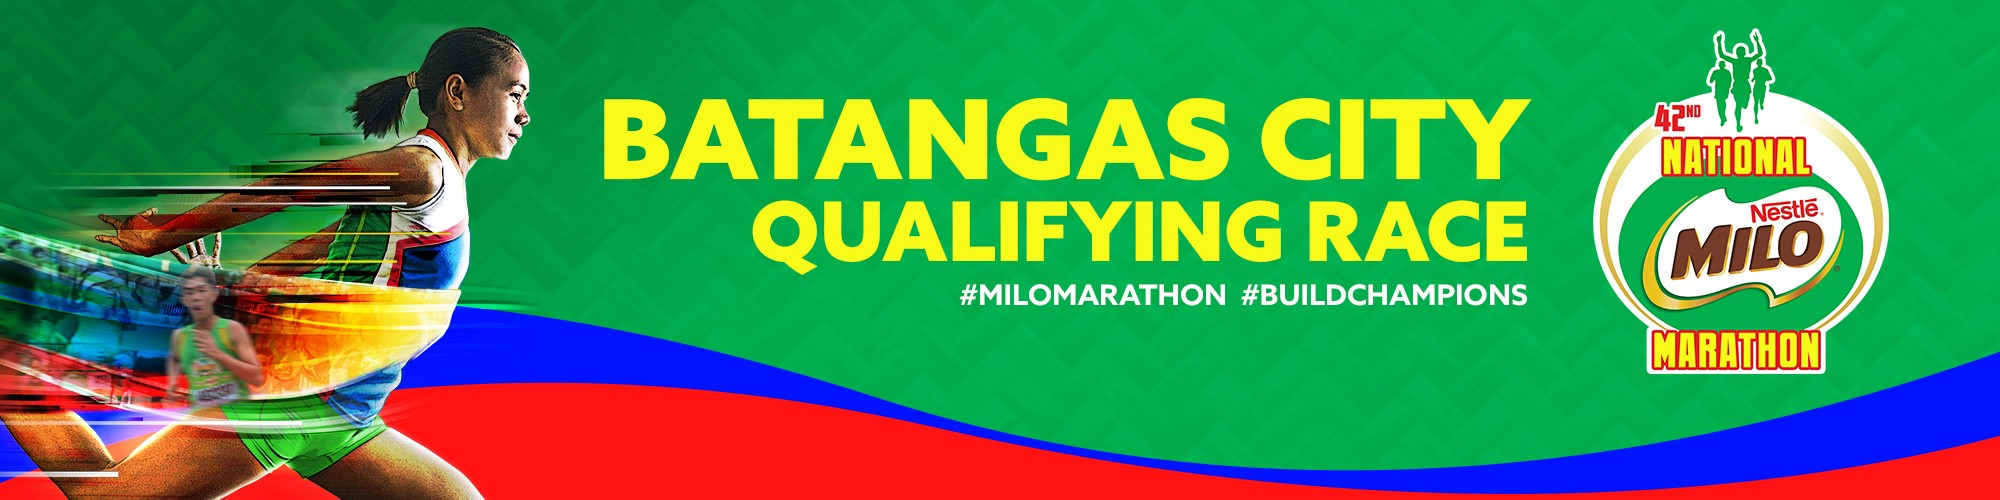 2019 National MILO Marathon Batangas City